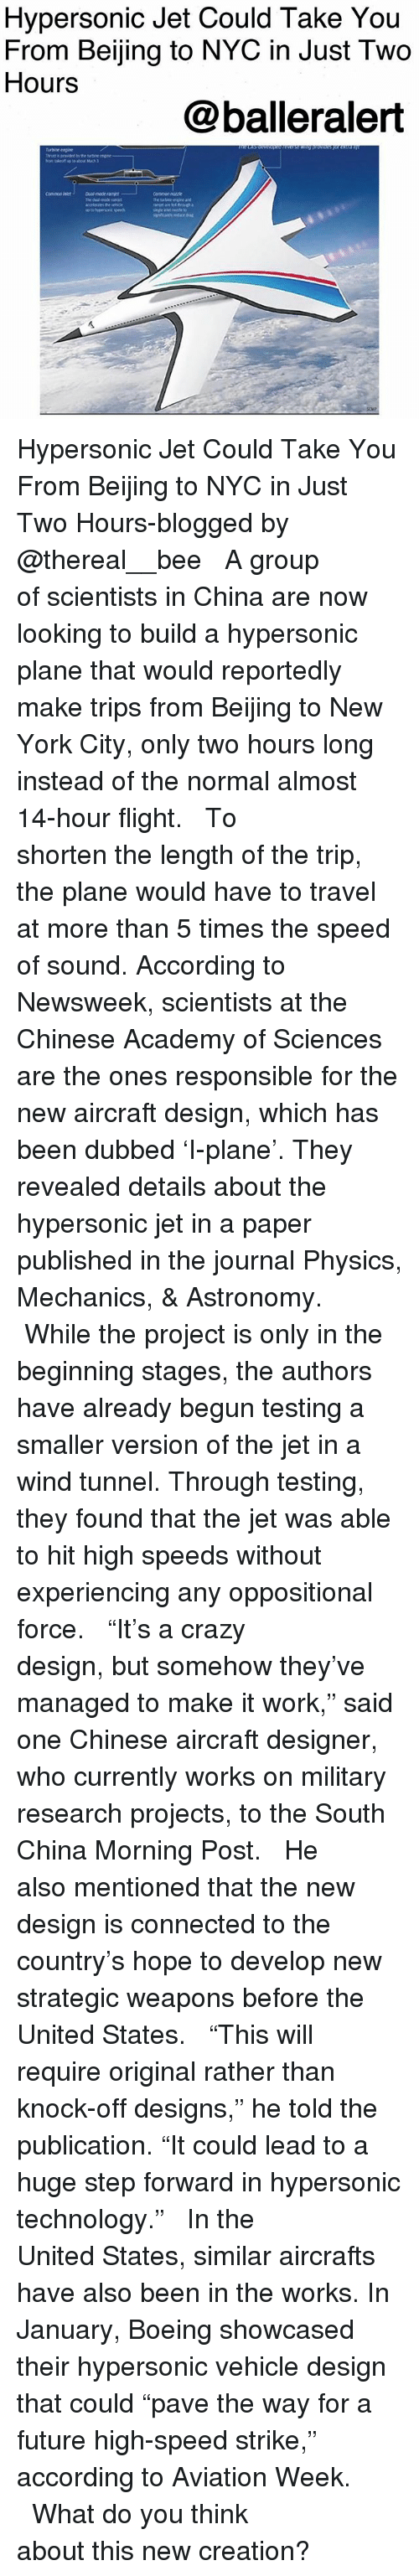 "Beijing, Crazy, and Future: Hypersonic Jet Could Take You  From Beijing to NYC in Just Two  Hours  @balleralert Hypersonic Jet Could Take You From Beijing to NYC in Just Two Hours-blogged by @thereal__bee ⠀⠀⠀⠀⠀⠀⠀⠀⠀ ⠀⠀ A group of scientists in China are now looking to build a hypersonic plane that would reportedly make trips from Beijing to New York City, only two hours long instead of the normal almost 14-hour flight. ⠀⠀⠀⠀⠀⠀⠀⠀⠀ ⠀⠀ To shorten the length of the trip, the plane would have to travel at more than 5 times the speed of sound. According to Newsweek, scientists at the Chinese Academy of Sciences are the ones responsible for the new aircraft design, which has been dubbed 'I-plane'. They revealed details about the hypersonic jet in a paper published in the journal Physics, Mechanics, & Astronomy. ⠀⠀⠀⠀⠀⠀⠀⠀⠀ ⠀⠀ While the project is only in the beginning stages, the authors have already begun testing a smaller version of the jet in a wind tunnel. Through testing, they found that the jet was able to hit high speeds without experiencing any oppositional force. ⠀⠀⠀⠀⠀⠀⠀⠀⠀ ⠀⠀ ""It's a crazy design, but somehow they've managed to make it work,"" said one Chinese aircraft designer, who currently works on military research projects, to the South China Morning Post. ⠀⠀⠀⠀⠀⠀⠀⠀⠀ ⠀⠀ He also mentioned that the new design is connected to the country's hope to develop new strategic weapons before the United States. ⠀⠀⠀⠀⠀⠀⠀⠀⠀ ⠀⠀ ""This will require original rather than knock-off designs,"" he told the publication. ""It could lead to a huge step forward in hypersonic technology."" ⠀⠀⠀⠀⠀⠀⠀⠀⠀ ⠀⠀ In the United States, similar aircrafts have also been in the works. In January, Boeing showcased their hypersonic vehicle design that could ""pave the way for a future high-speed strike,"" according to Aviation Week. ⠀⠀⠀⠀⠀⠀⠀⠀⠀ ⠀⠀ What do you think about this new creation?"